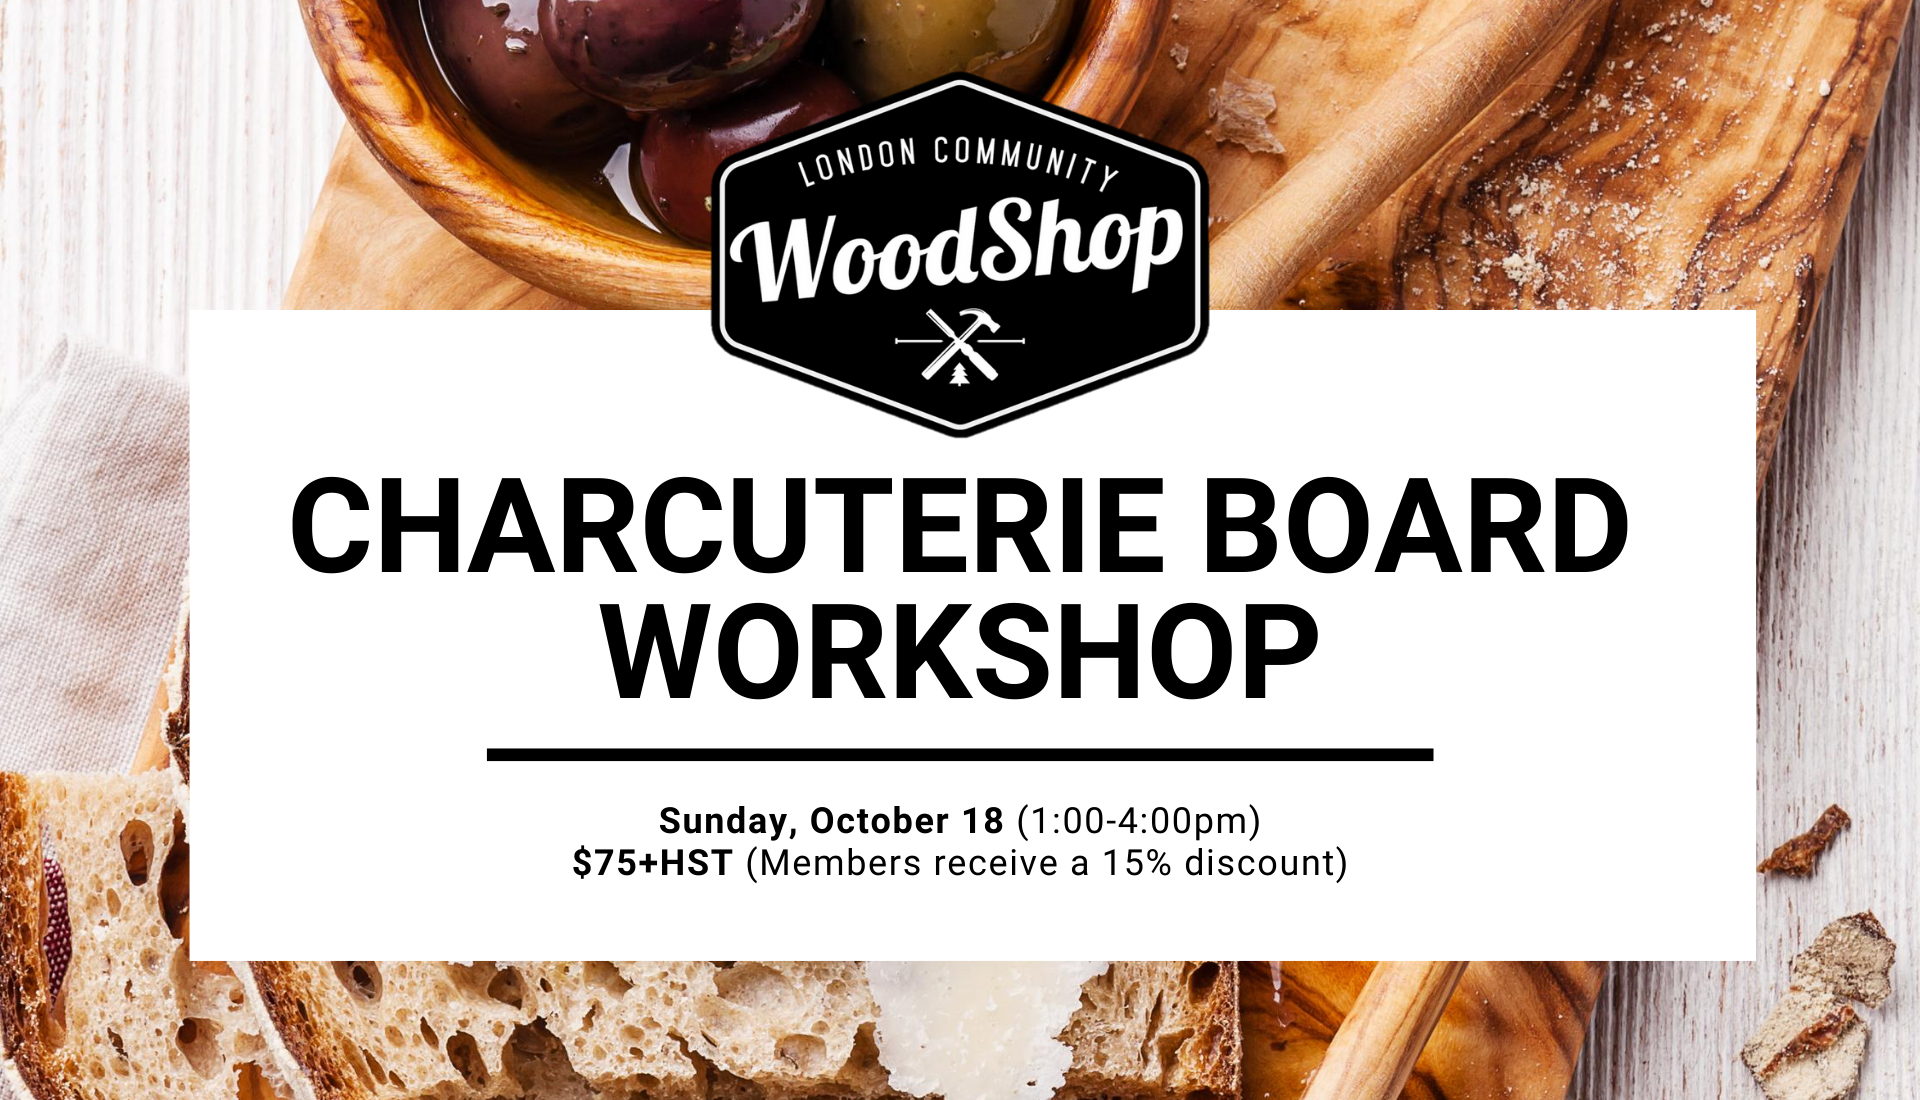 Charcuterie Board Workshop - October 18, 2020